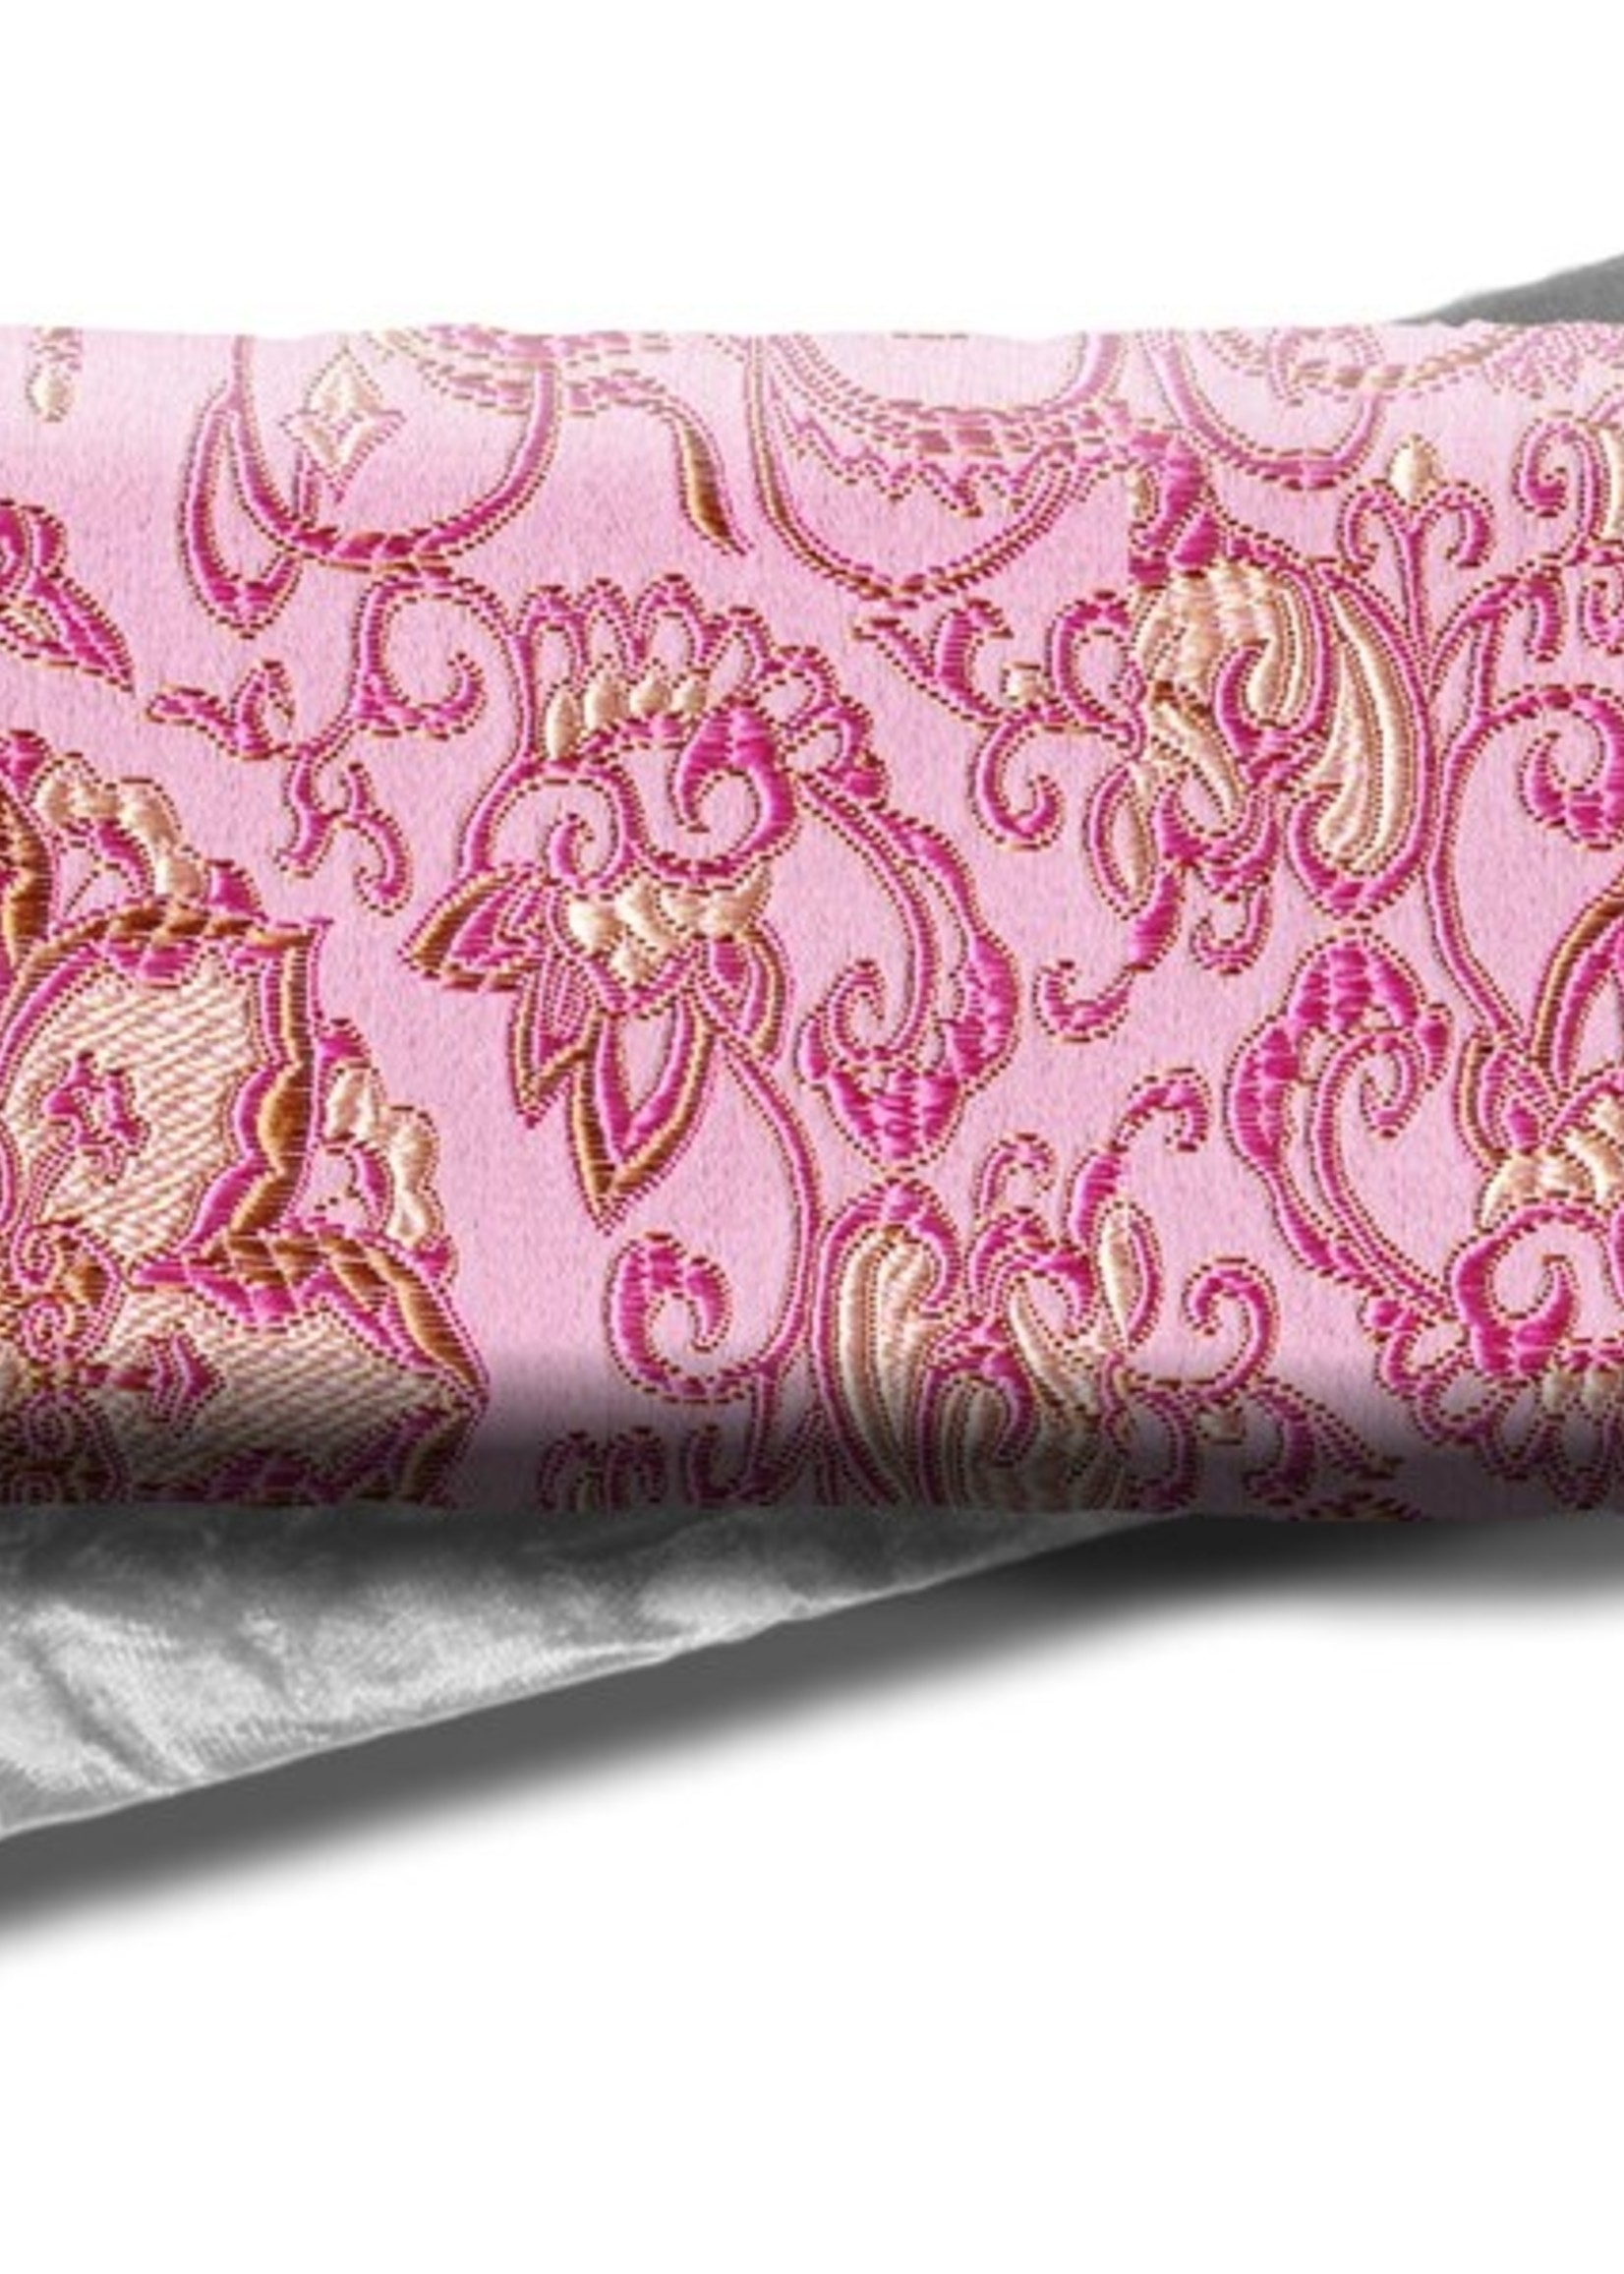 Eye PILLOW Pinkalicious w lavender HOT OR COLD